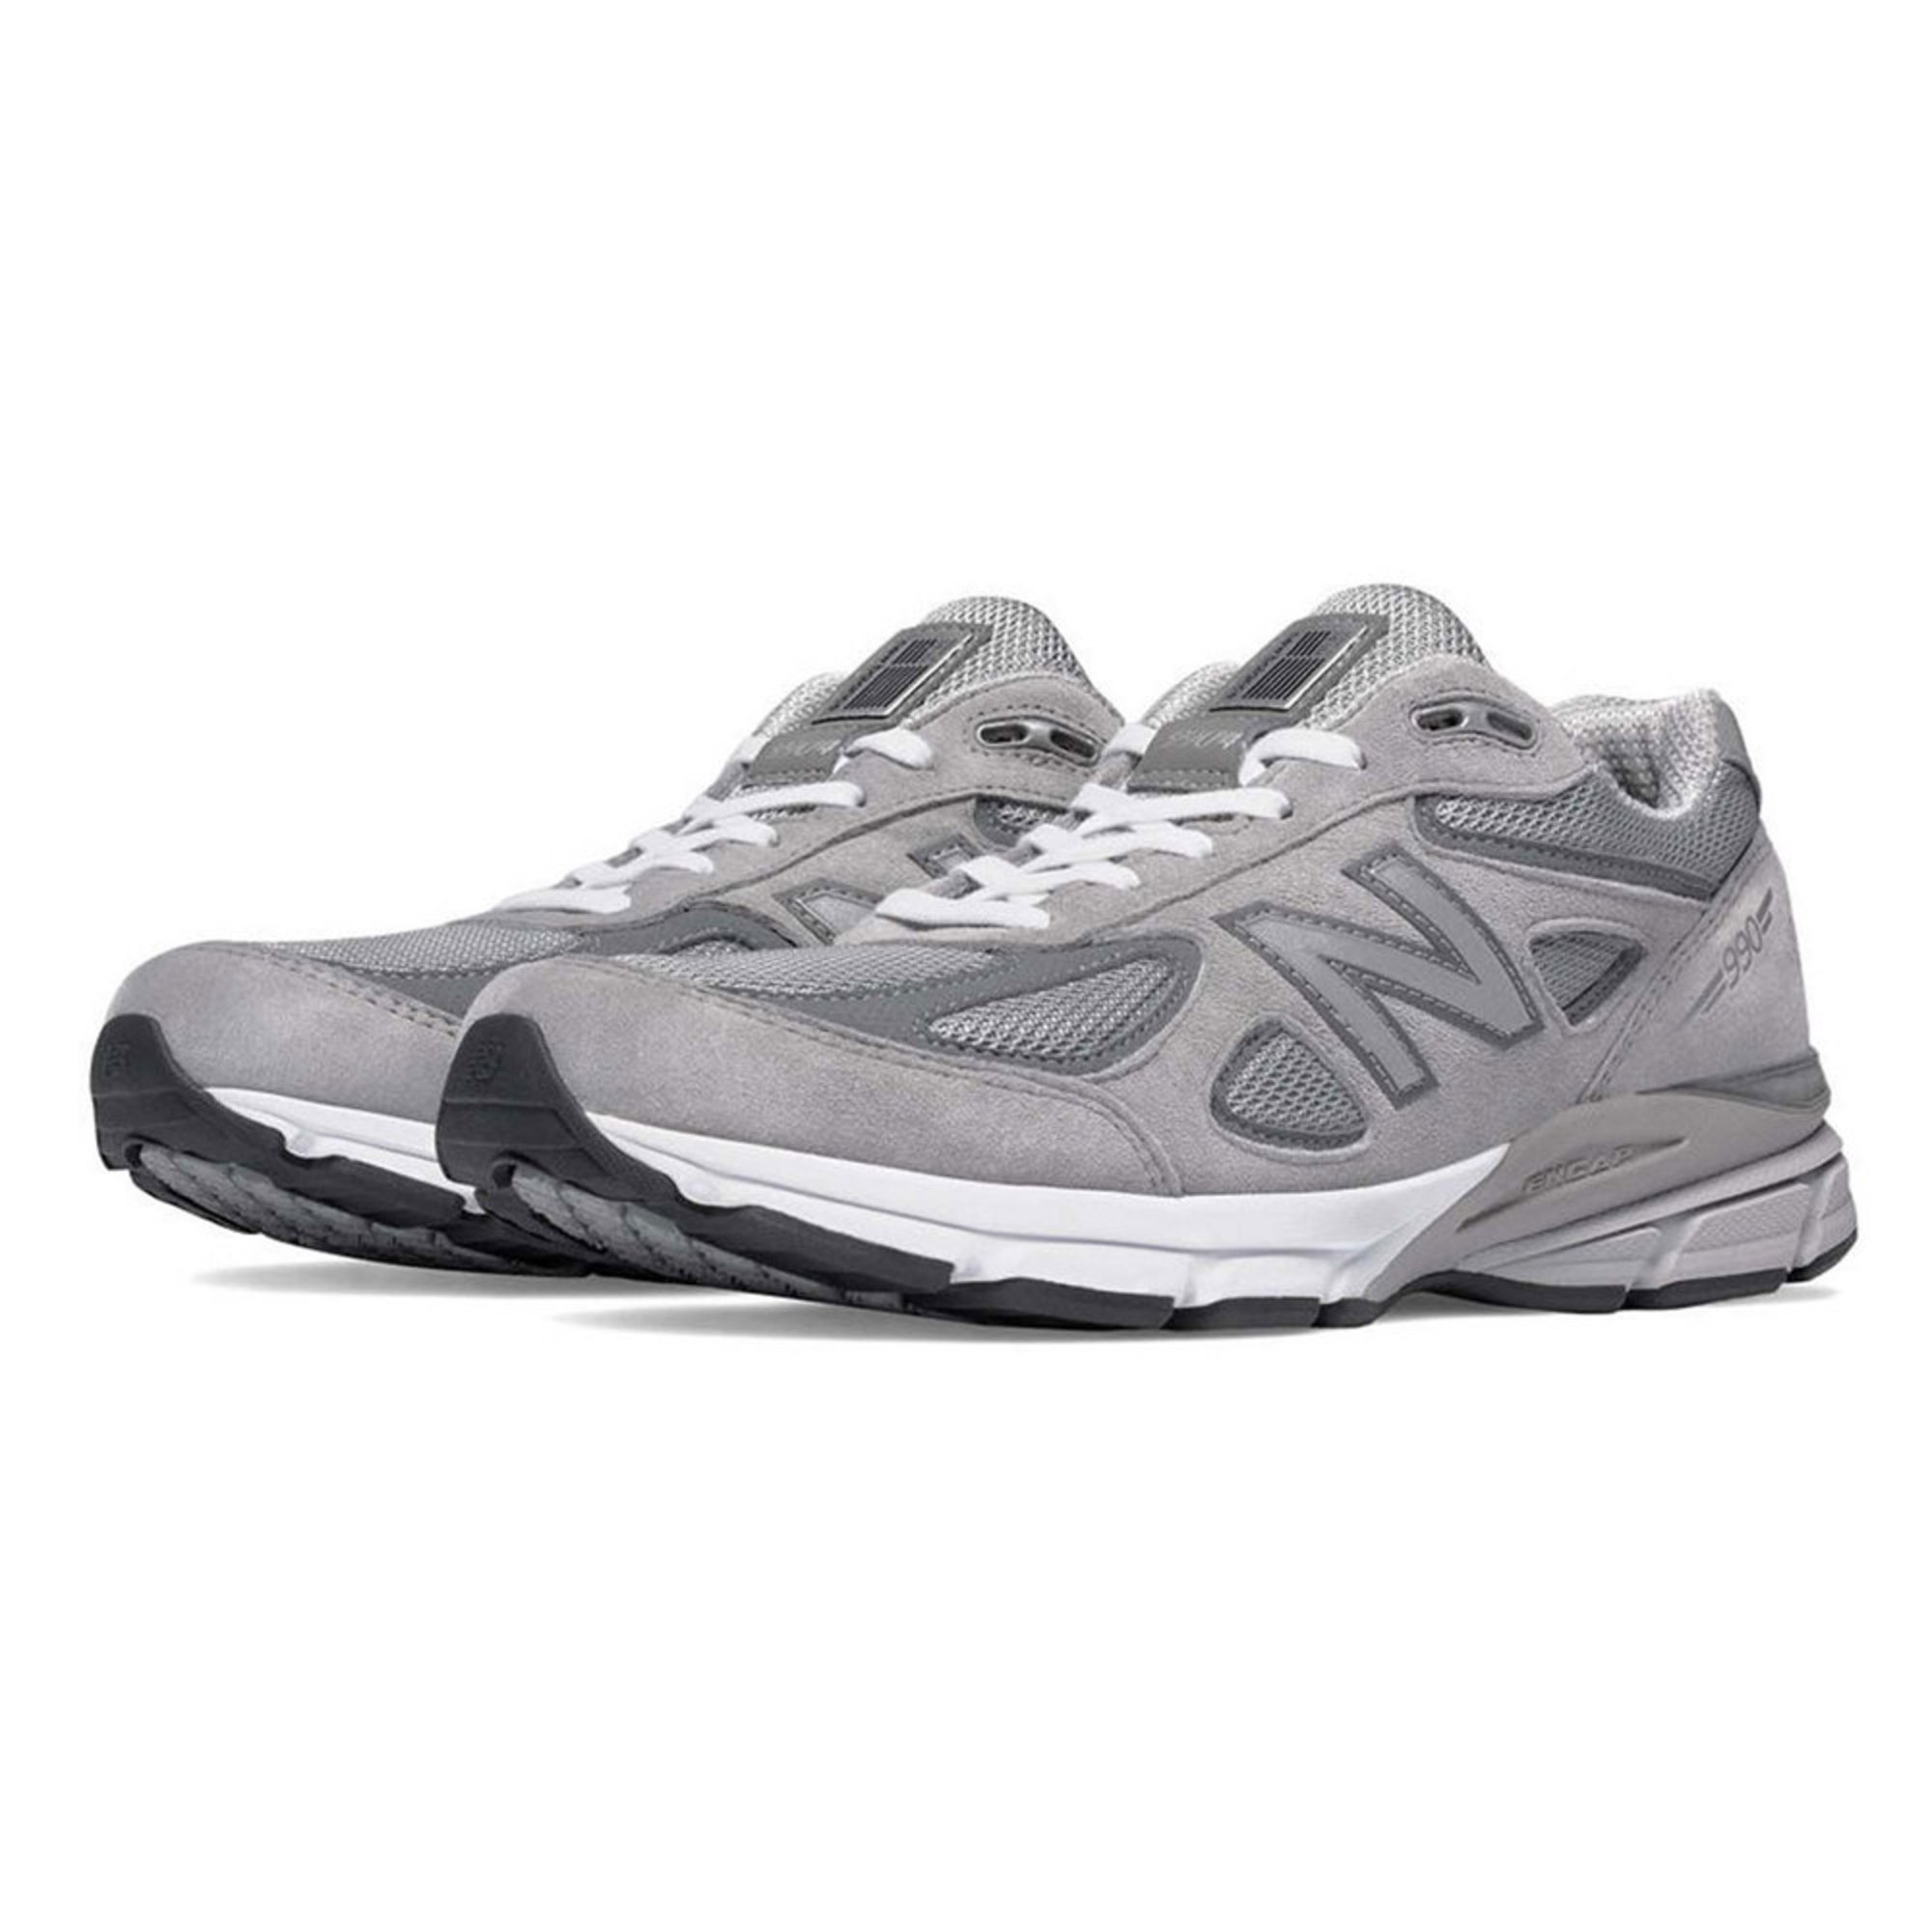 best service cae51 d31a2 New Balance Women's 990v4 Running Shoe